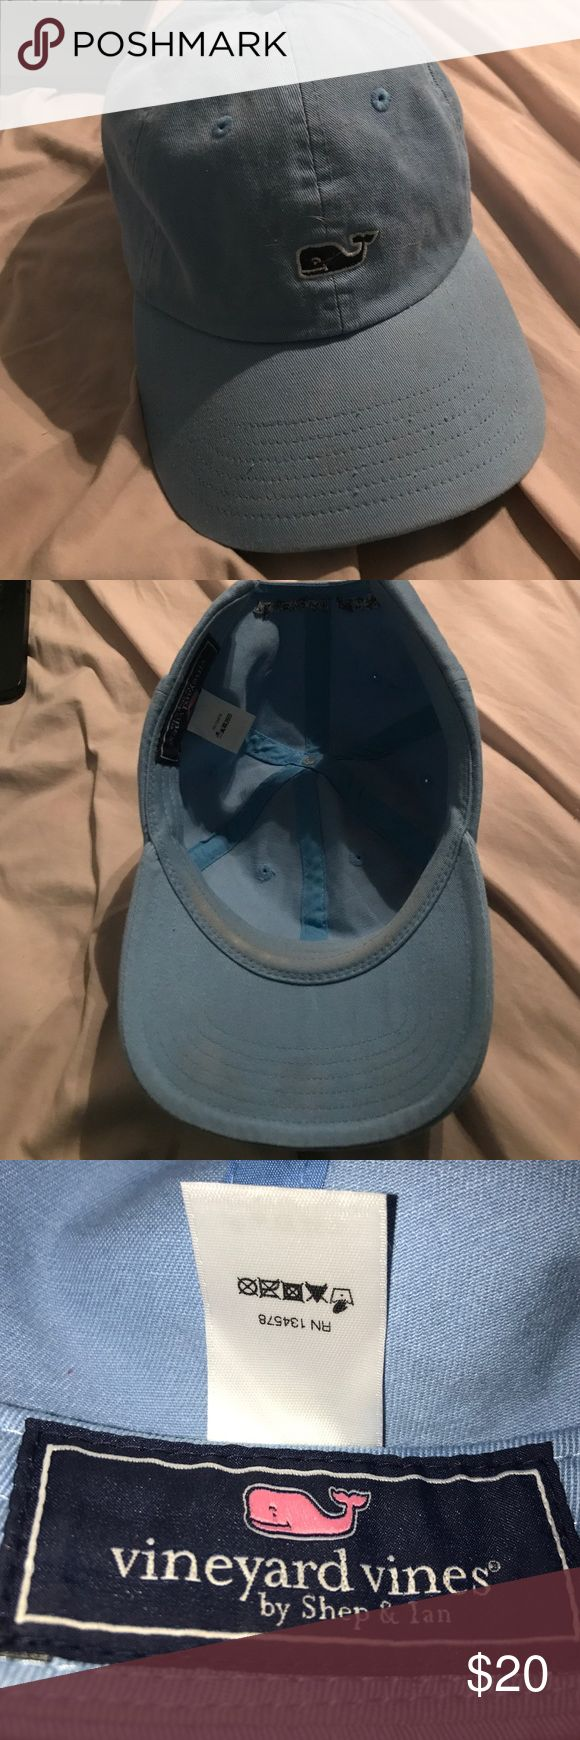 Vineyard Vines Blue Hat It is a blue vv hat in great shape! It is a baseball hat that can be adjusted to fit your head shape. A bit worn off in hat line, other than that its in great condition! Vineyard Vines Accessories Hats